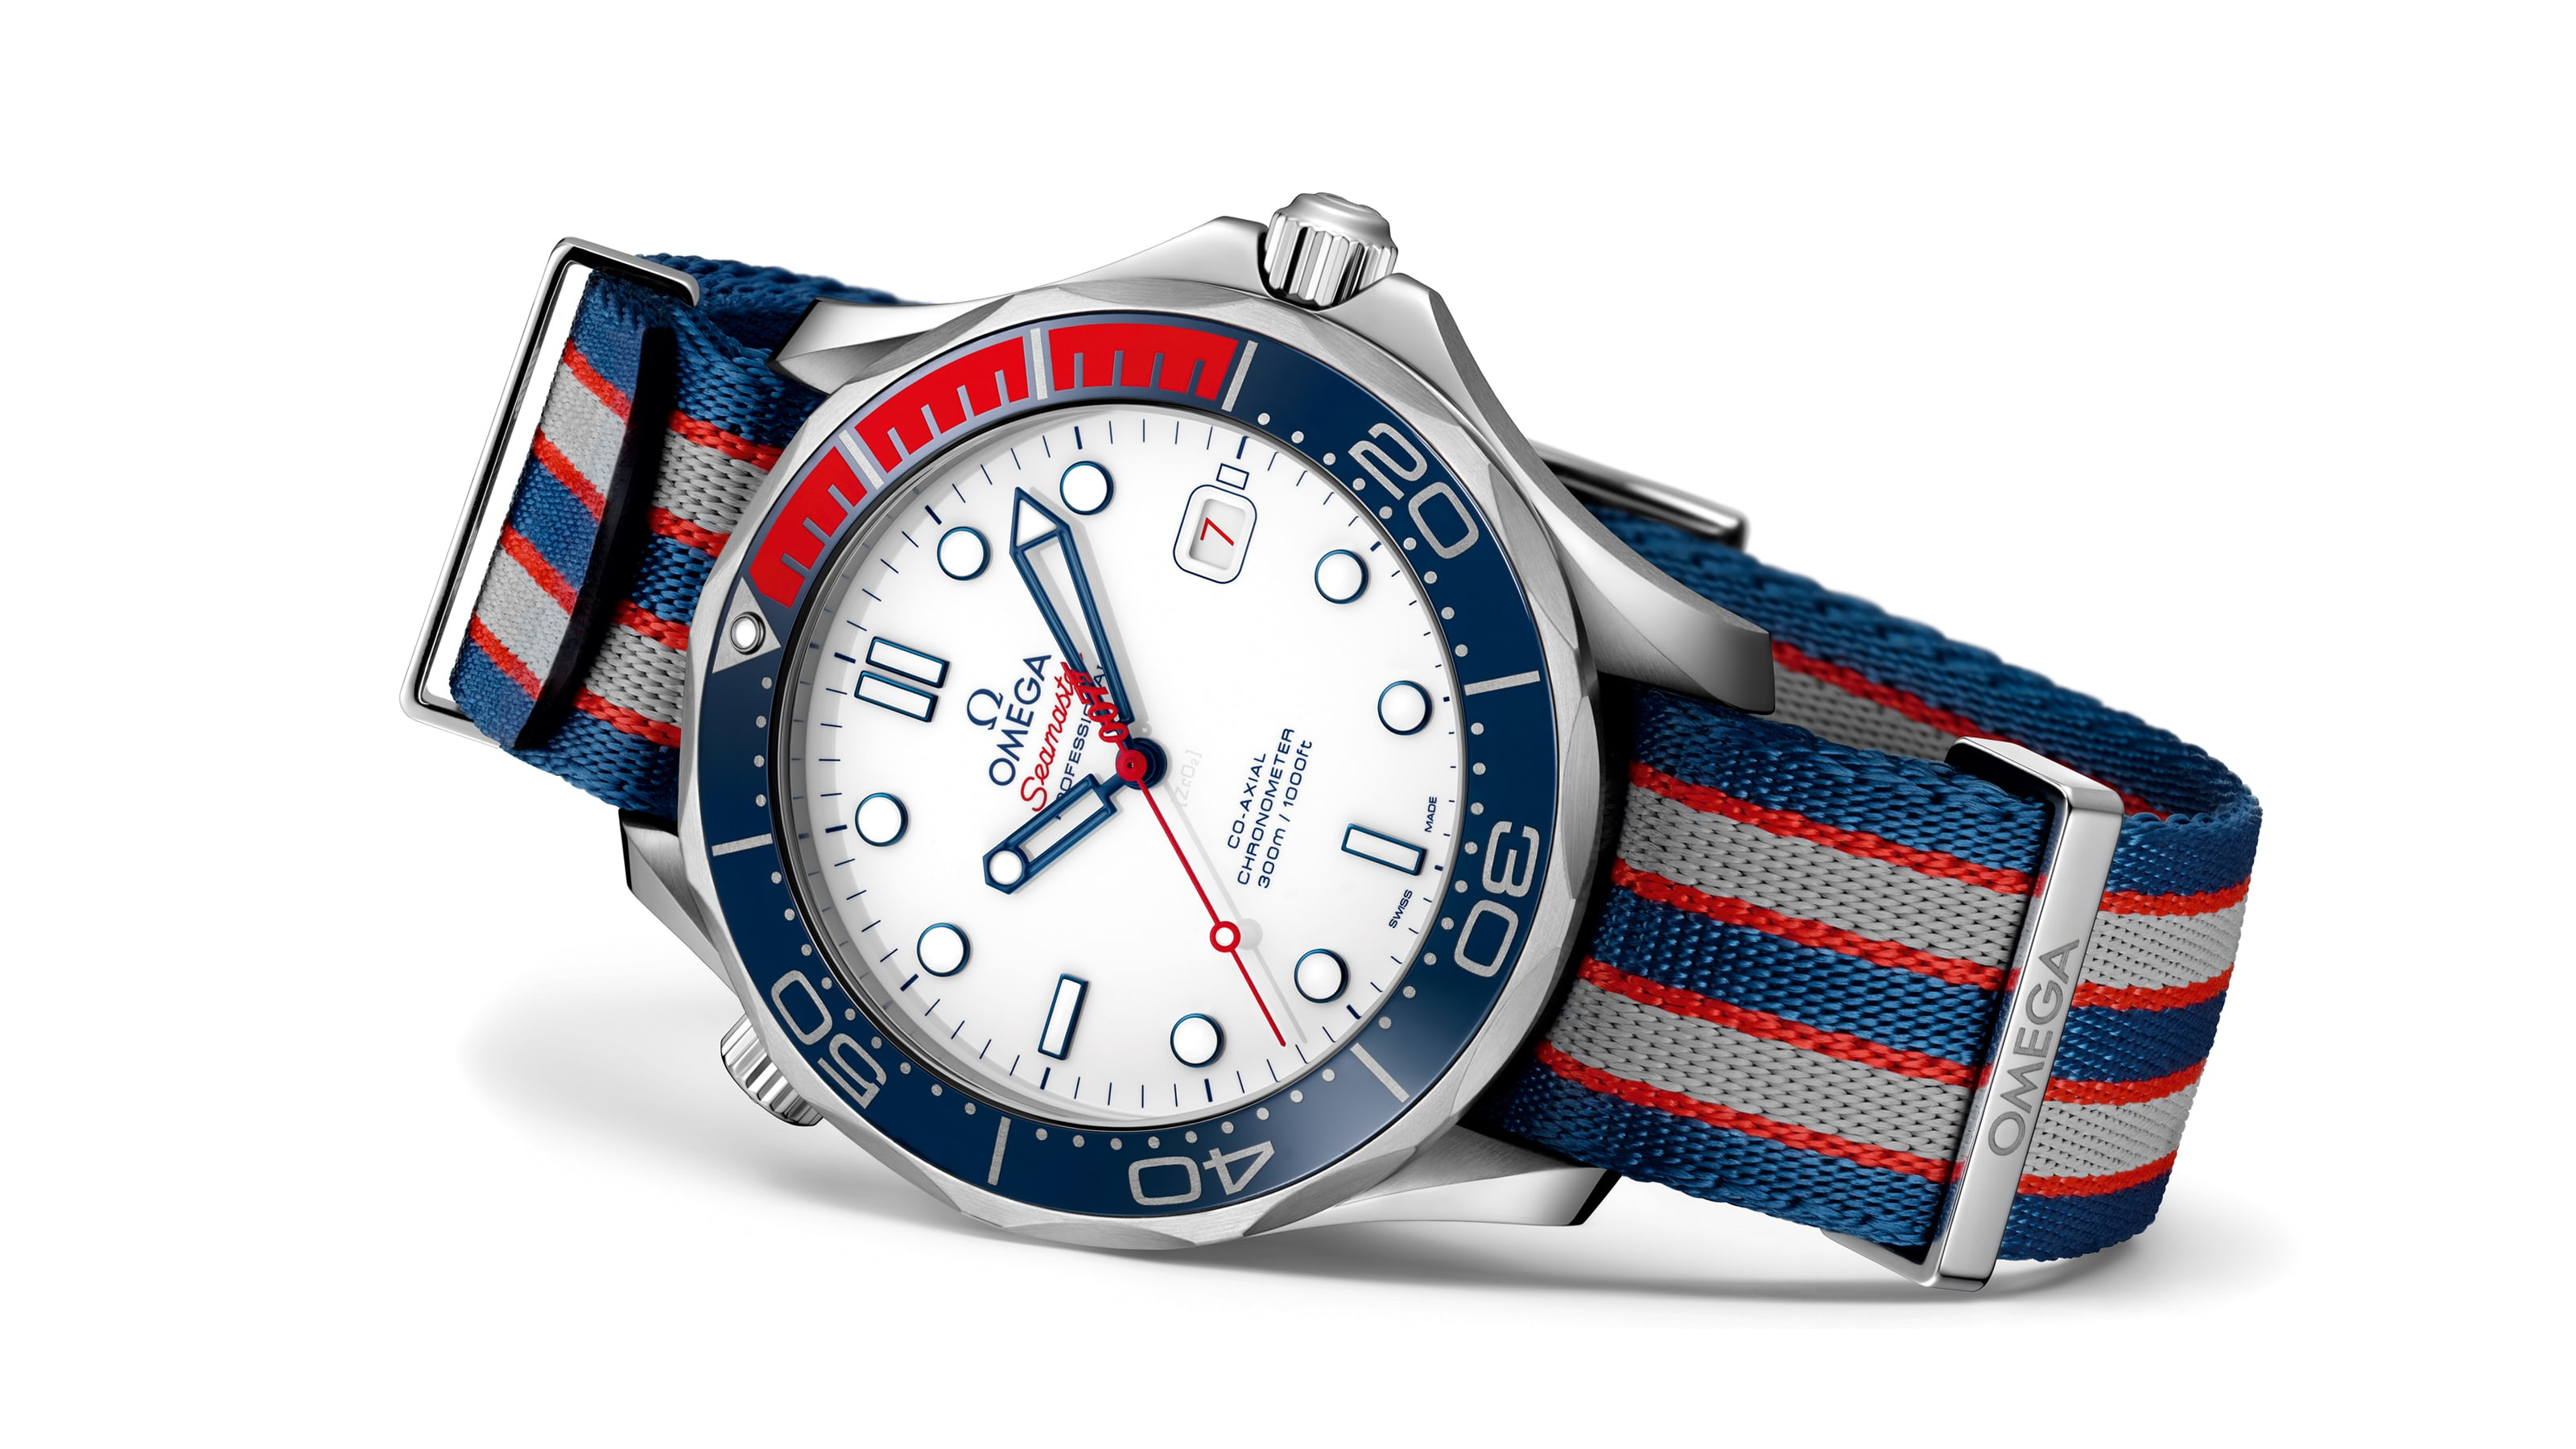 f7818647bba Introducing  The Omega James Bond Omega Seamaster Diver 300M  Commander s  Watch  Limited Edition - HODINKEE